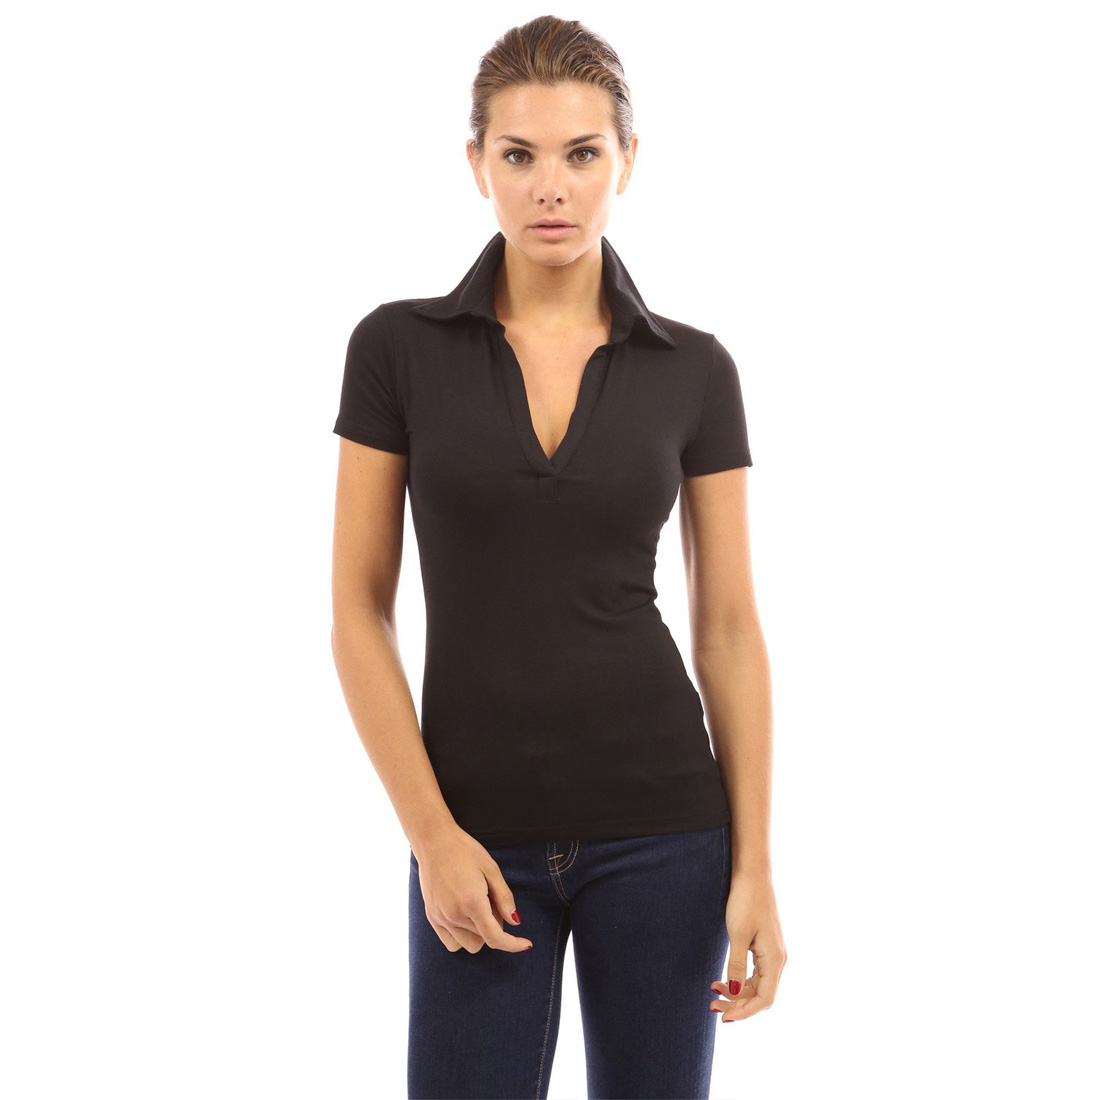 Womens-Sexy-Deep-V-Office-Shirt-Blouse-Short-Long-Sleeve-T-Shirt-Lady-Collar-Top